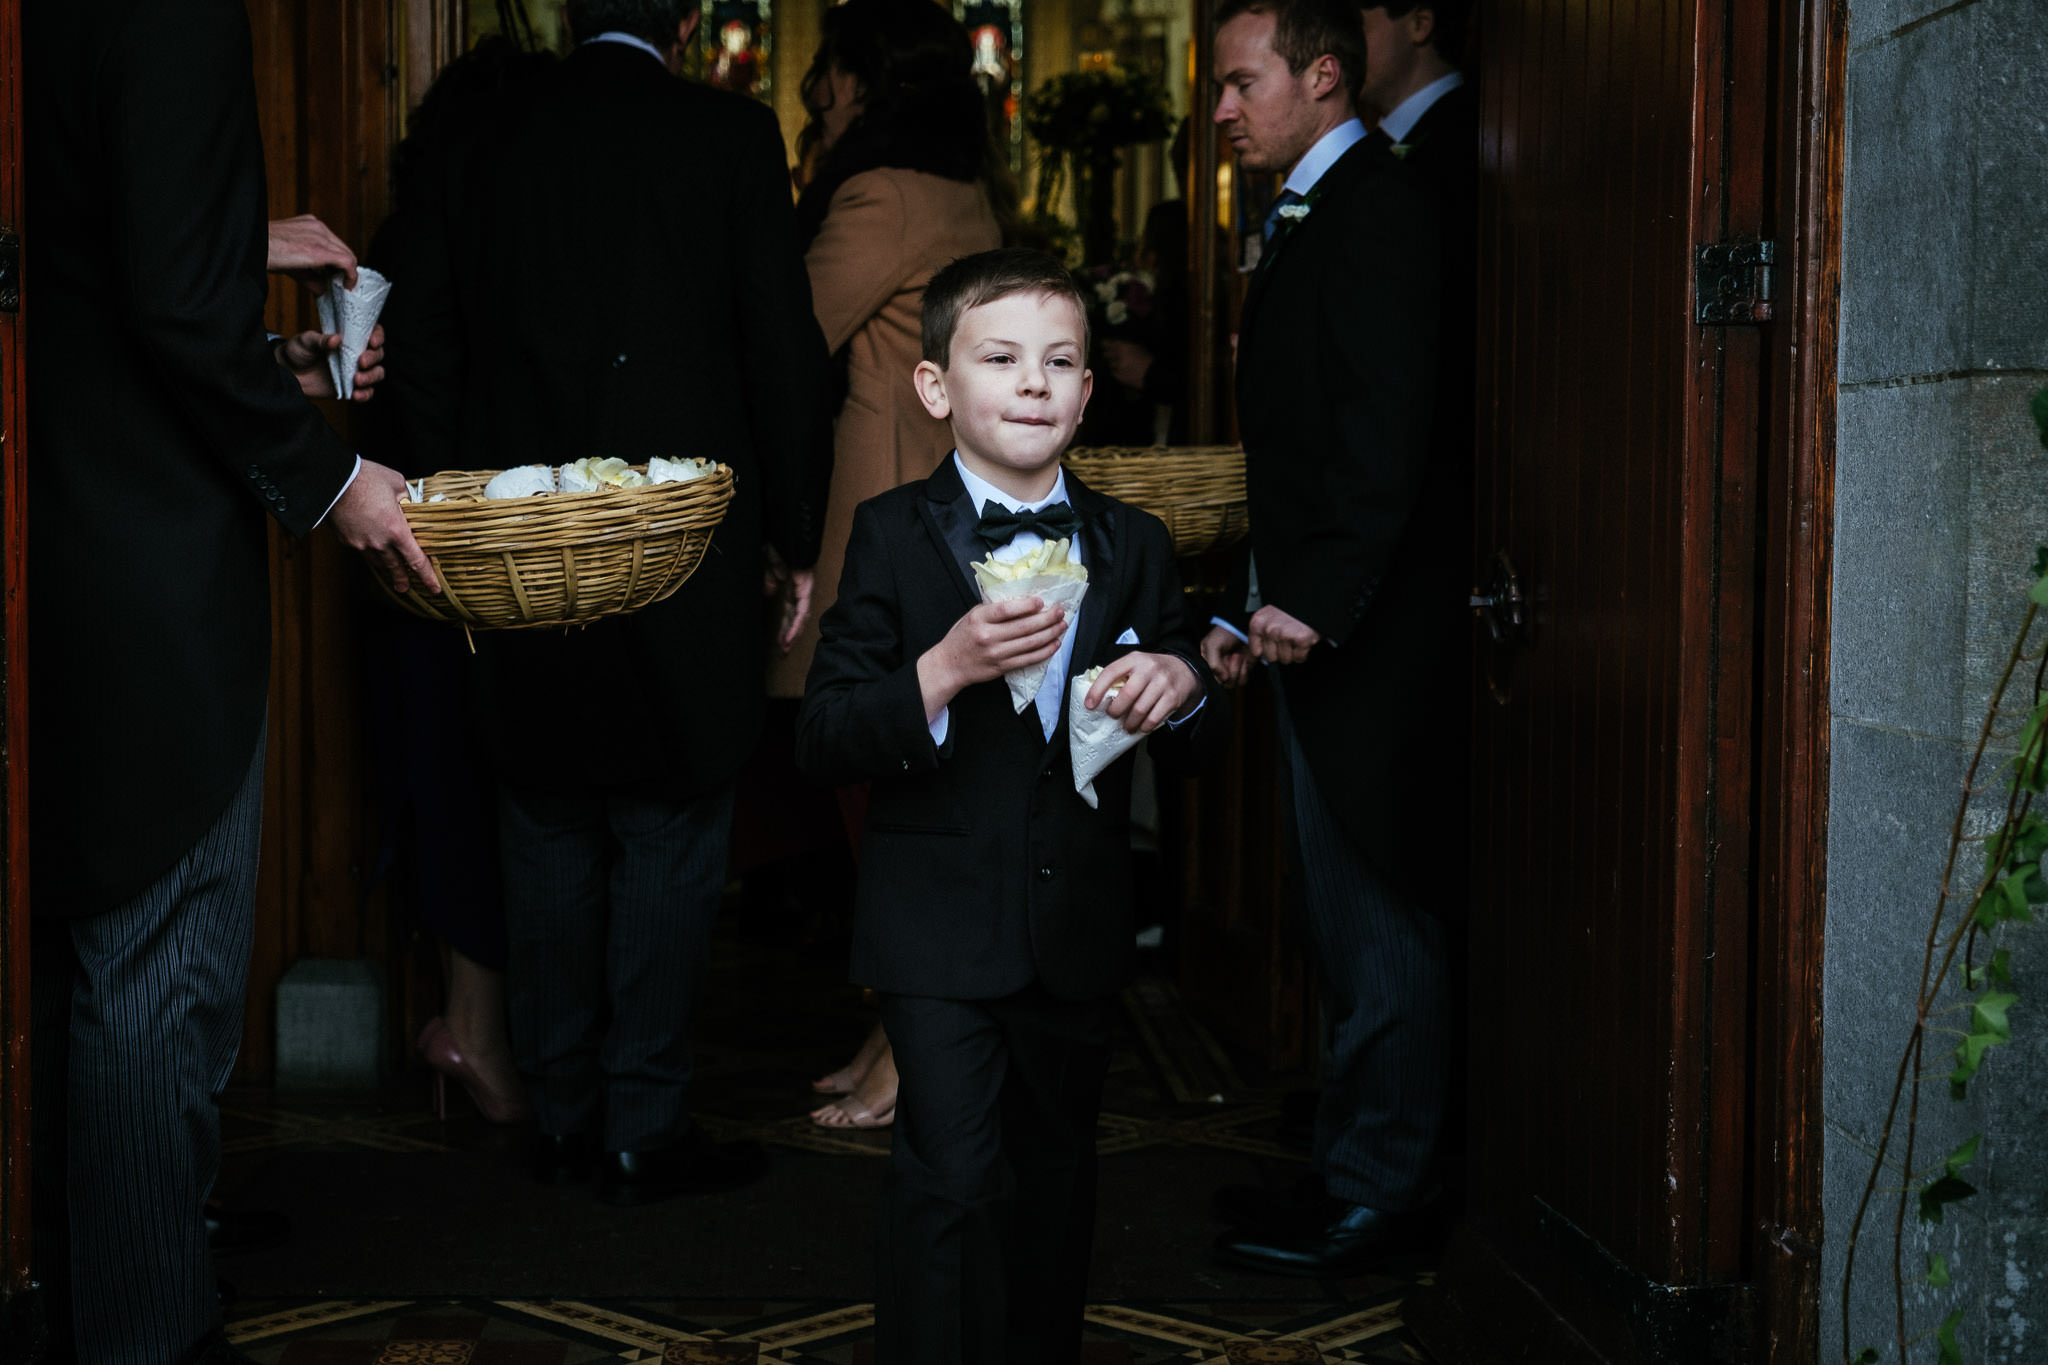 small boy after a wedding ceremony at St Brigid's Church Oldcastle